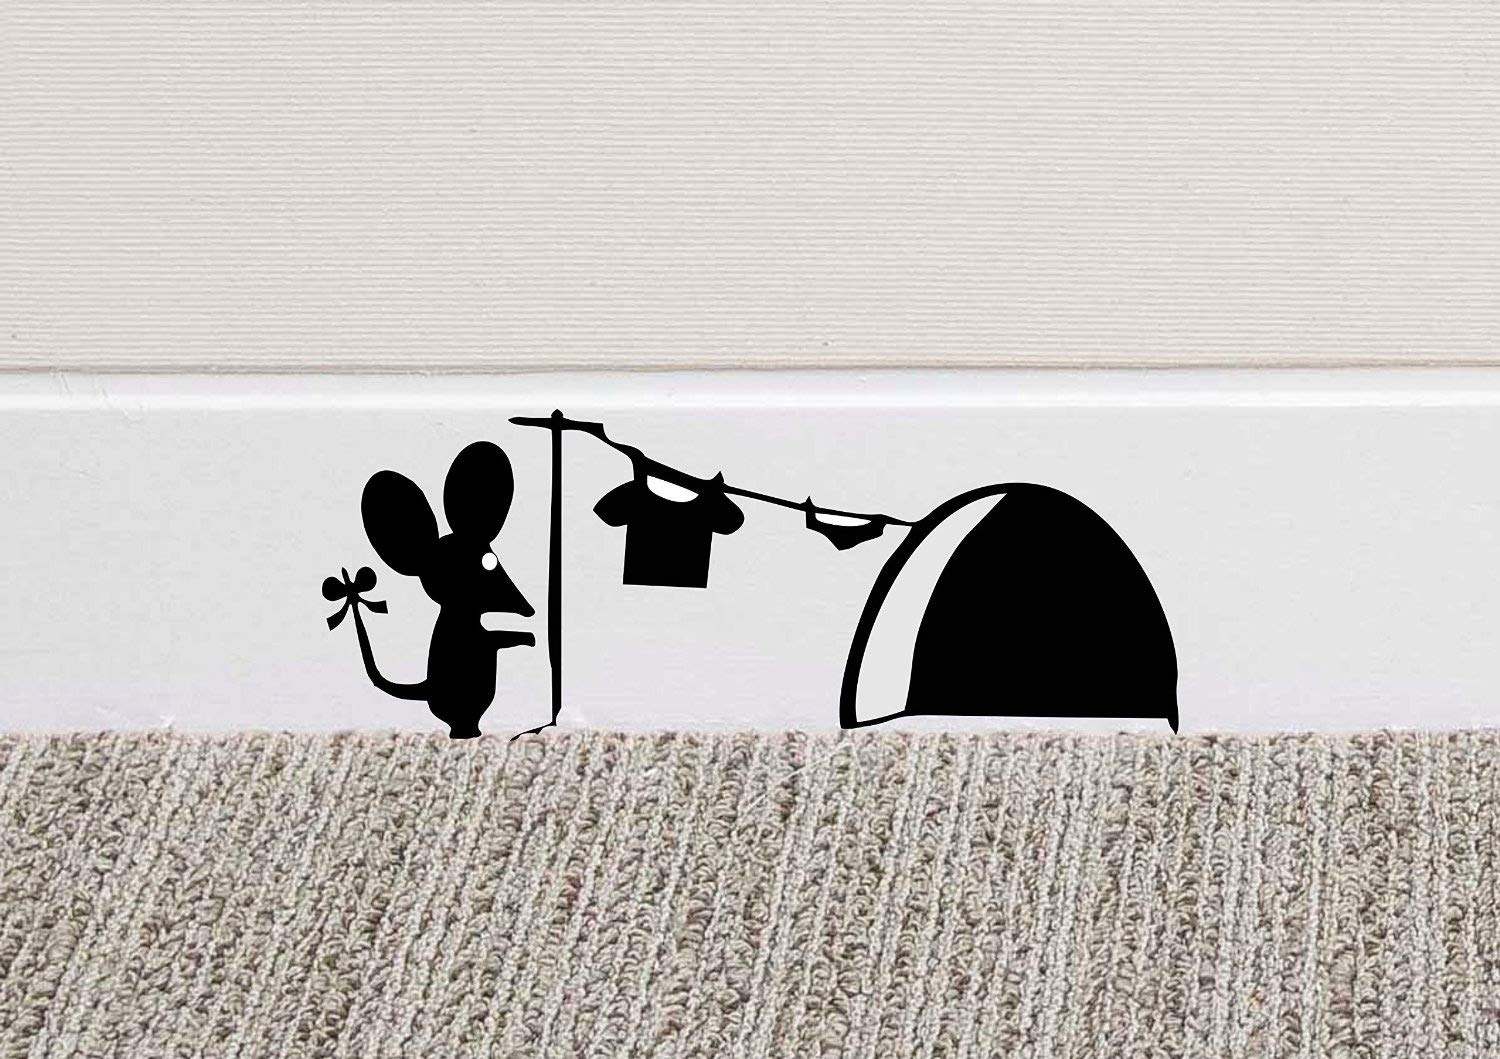 213B Mouse Hole Wall Art Sticker Washing Vinyl Decal Mice Home Skirting Board Funny by Black